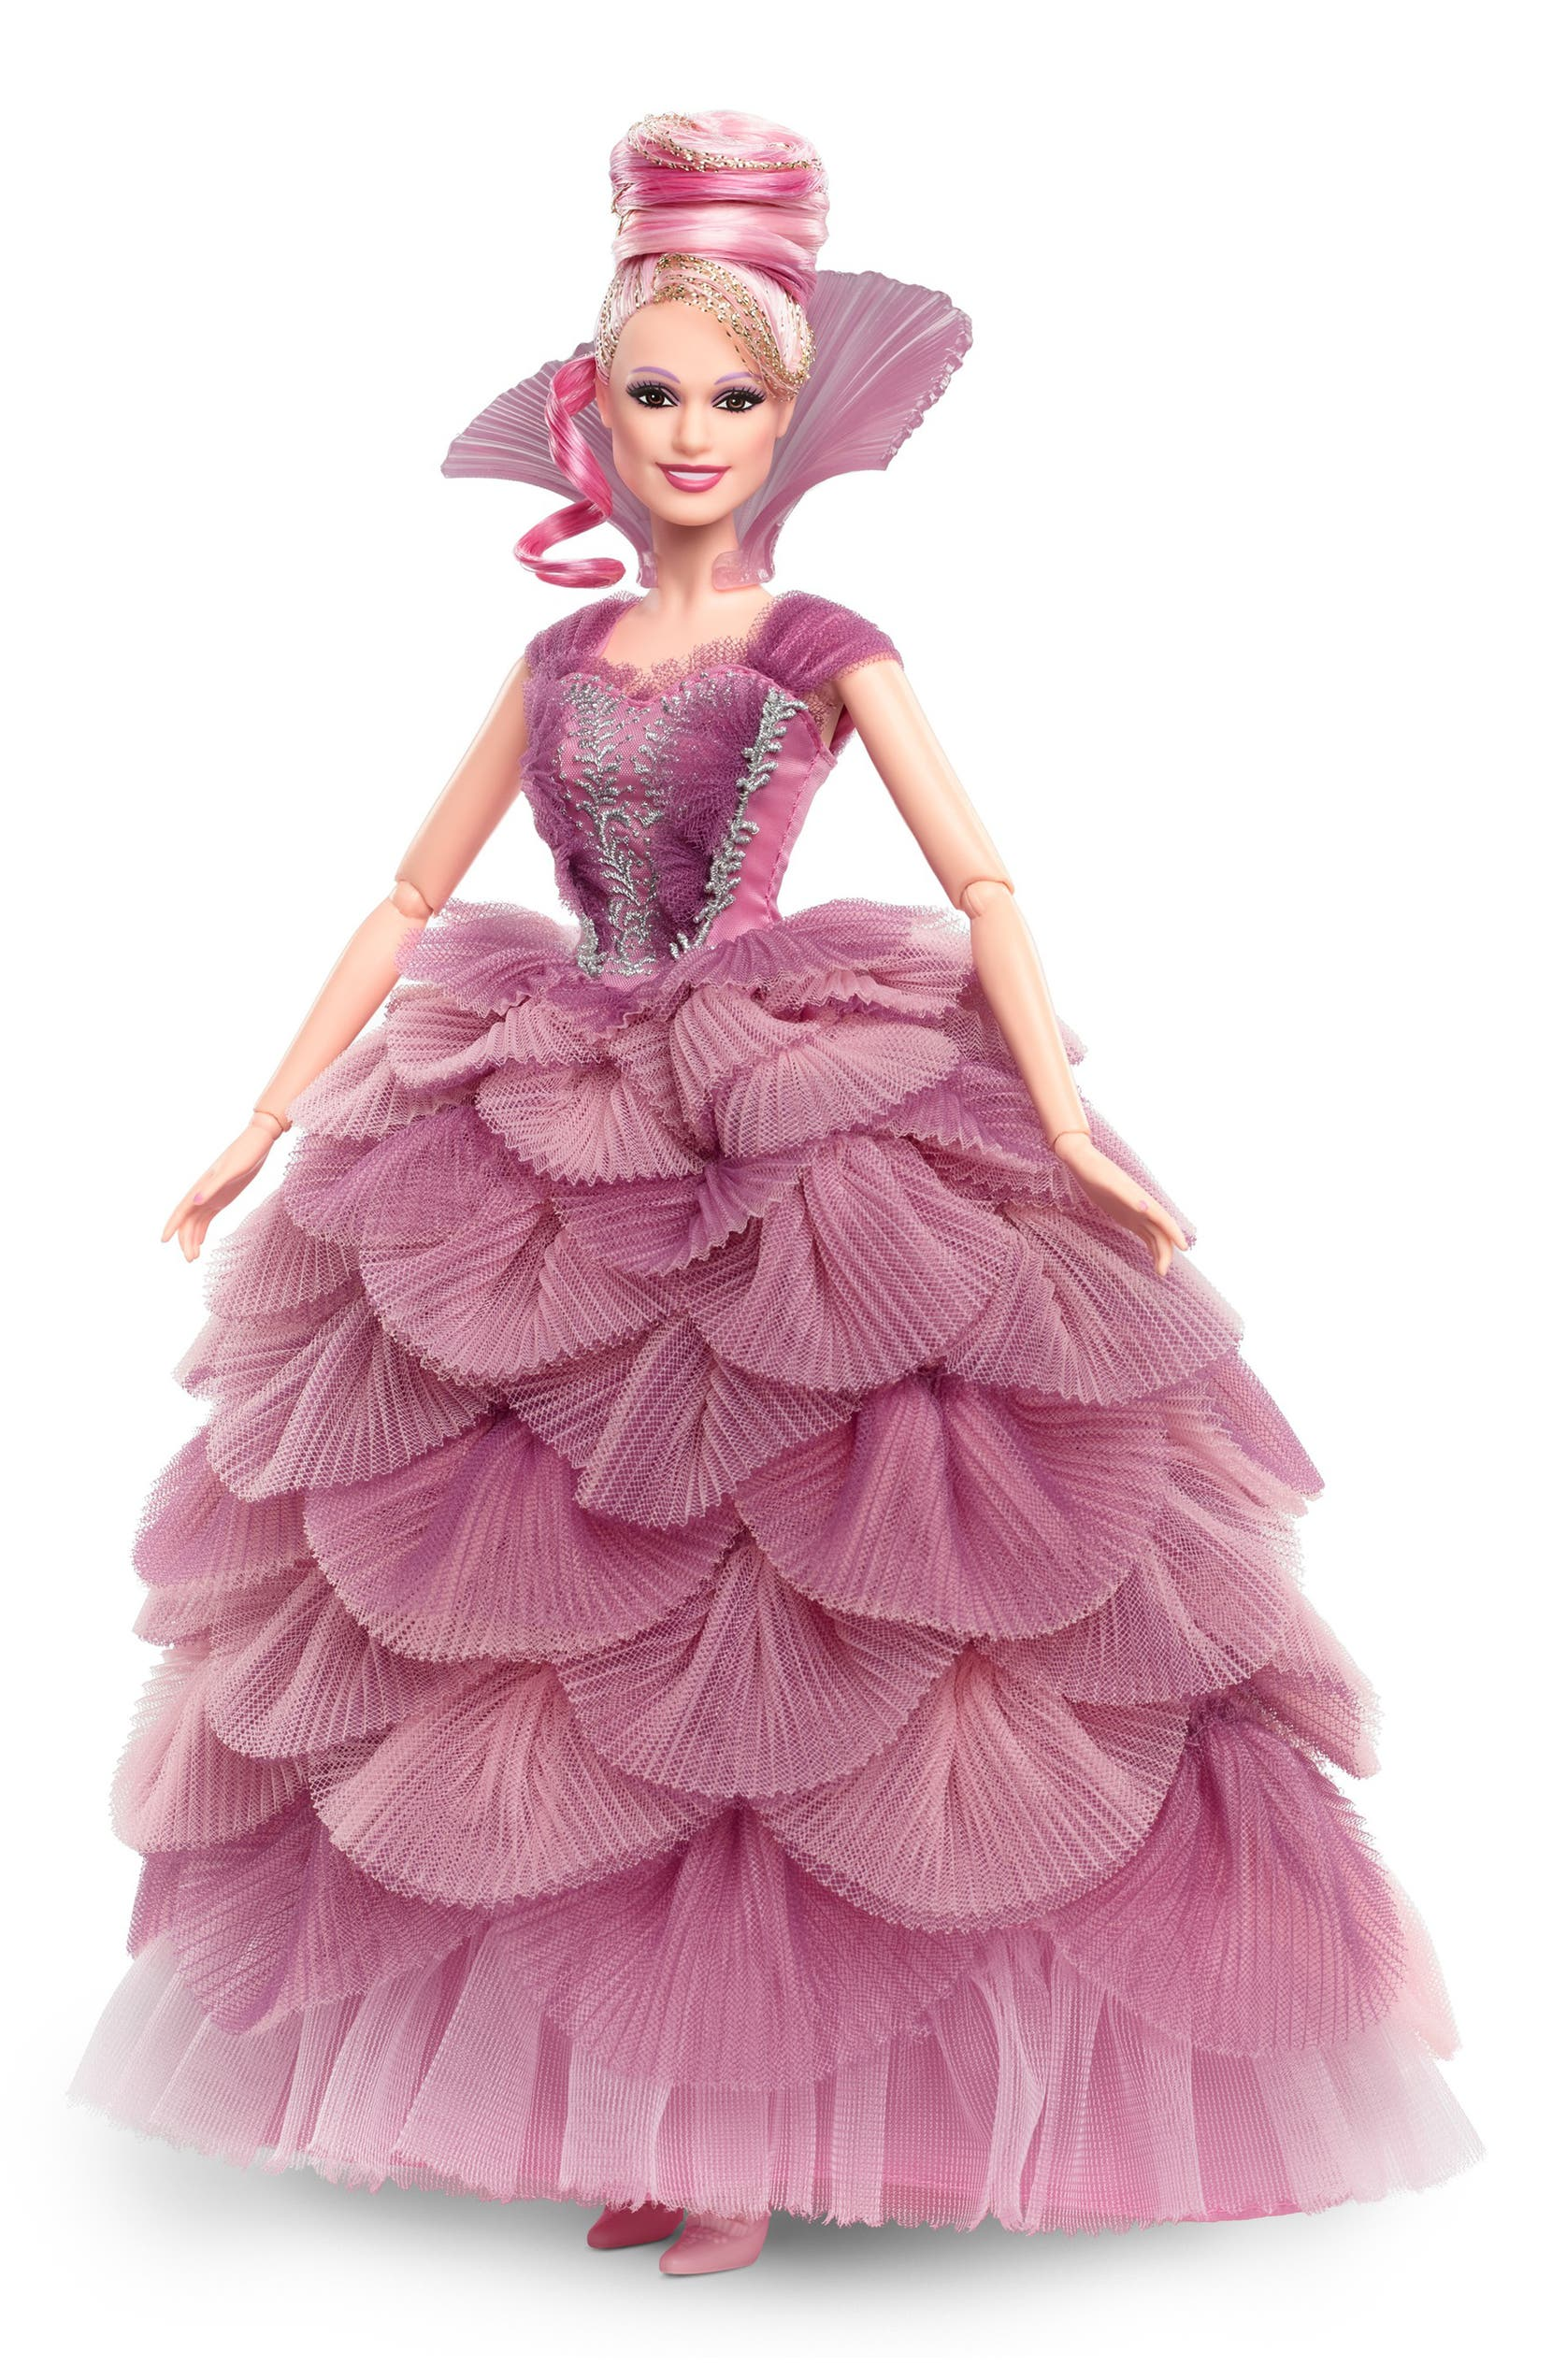 0892b8d9c96 Mattel Disney® The Nutcracker   the Four Realms Sugar Plum Fairy Barbie®  Doll